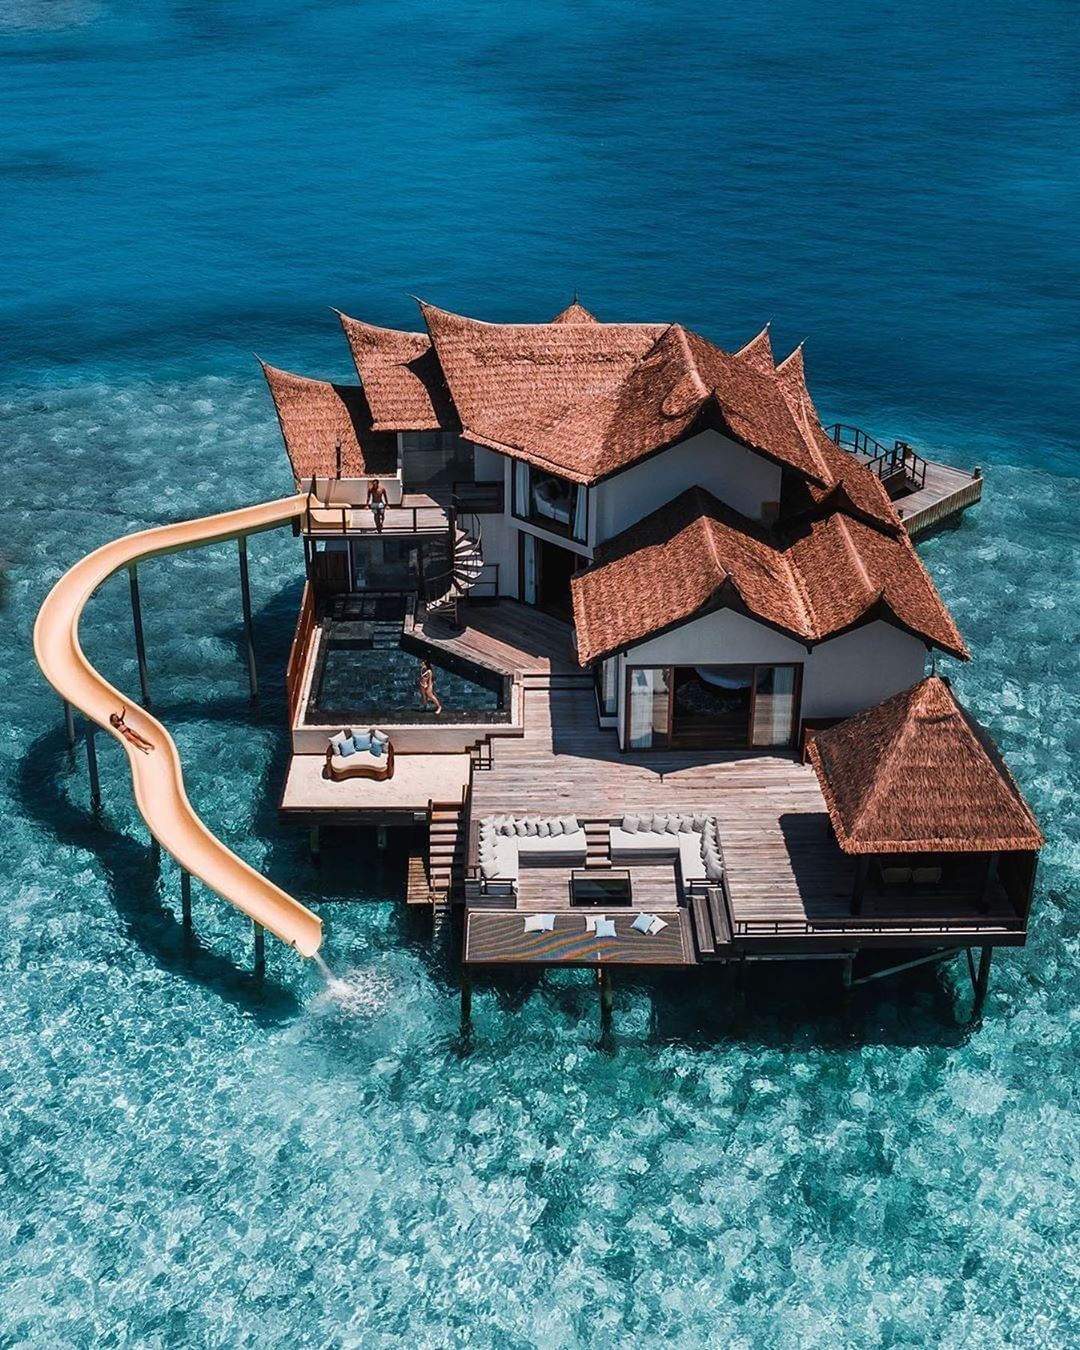 Top Luxuries On Instagram Who Needs A Vacation Right About Now By Jeremyaustiin Millionaire Homes Beautiful Hotels Resort